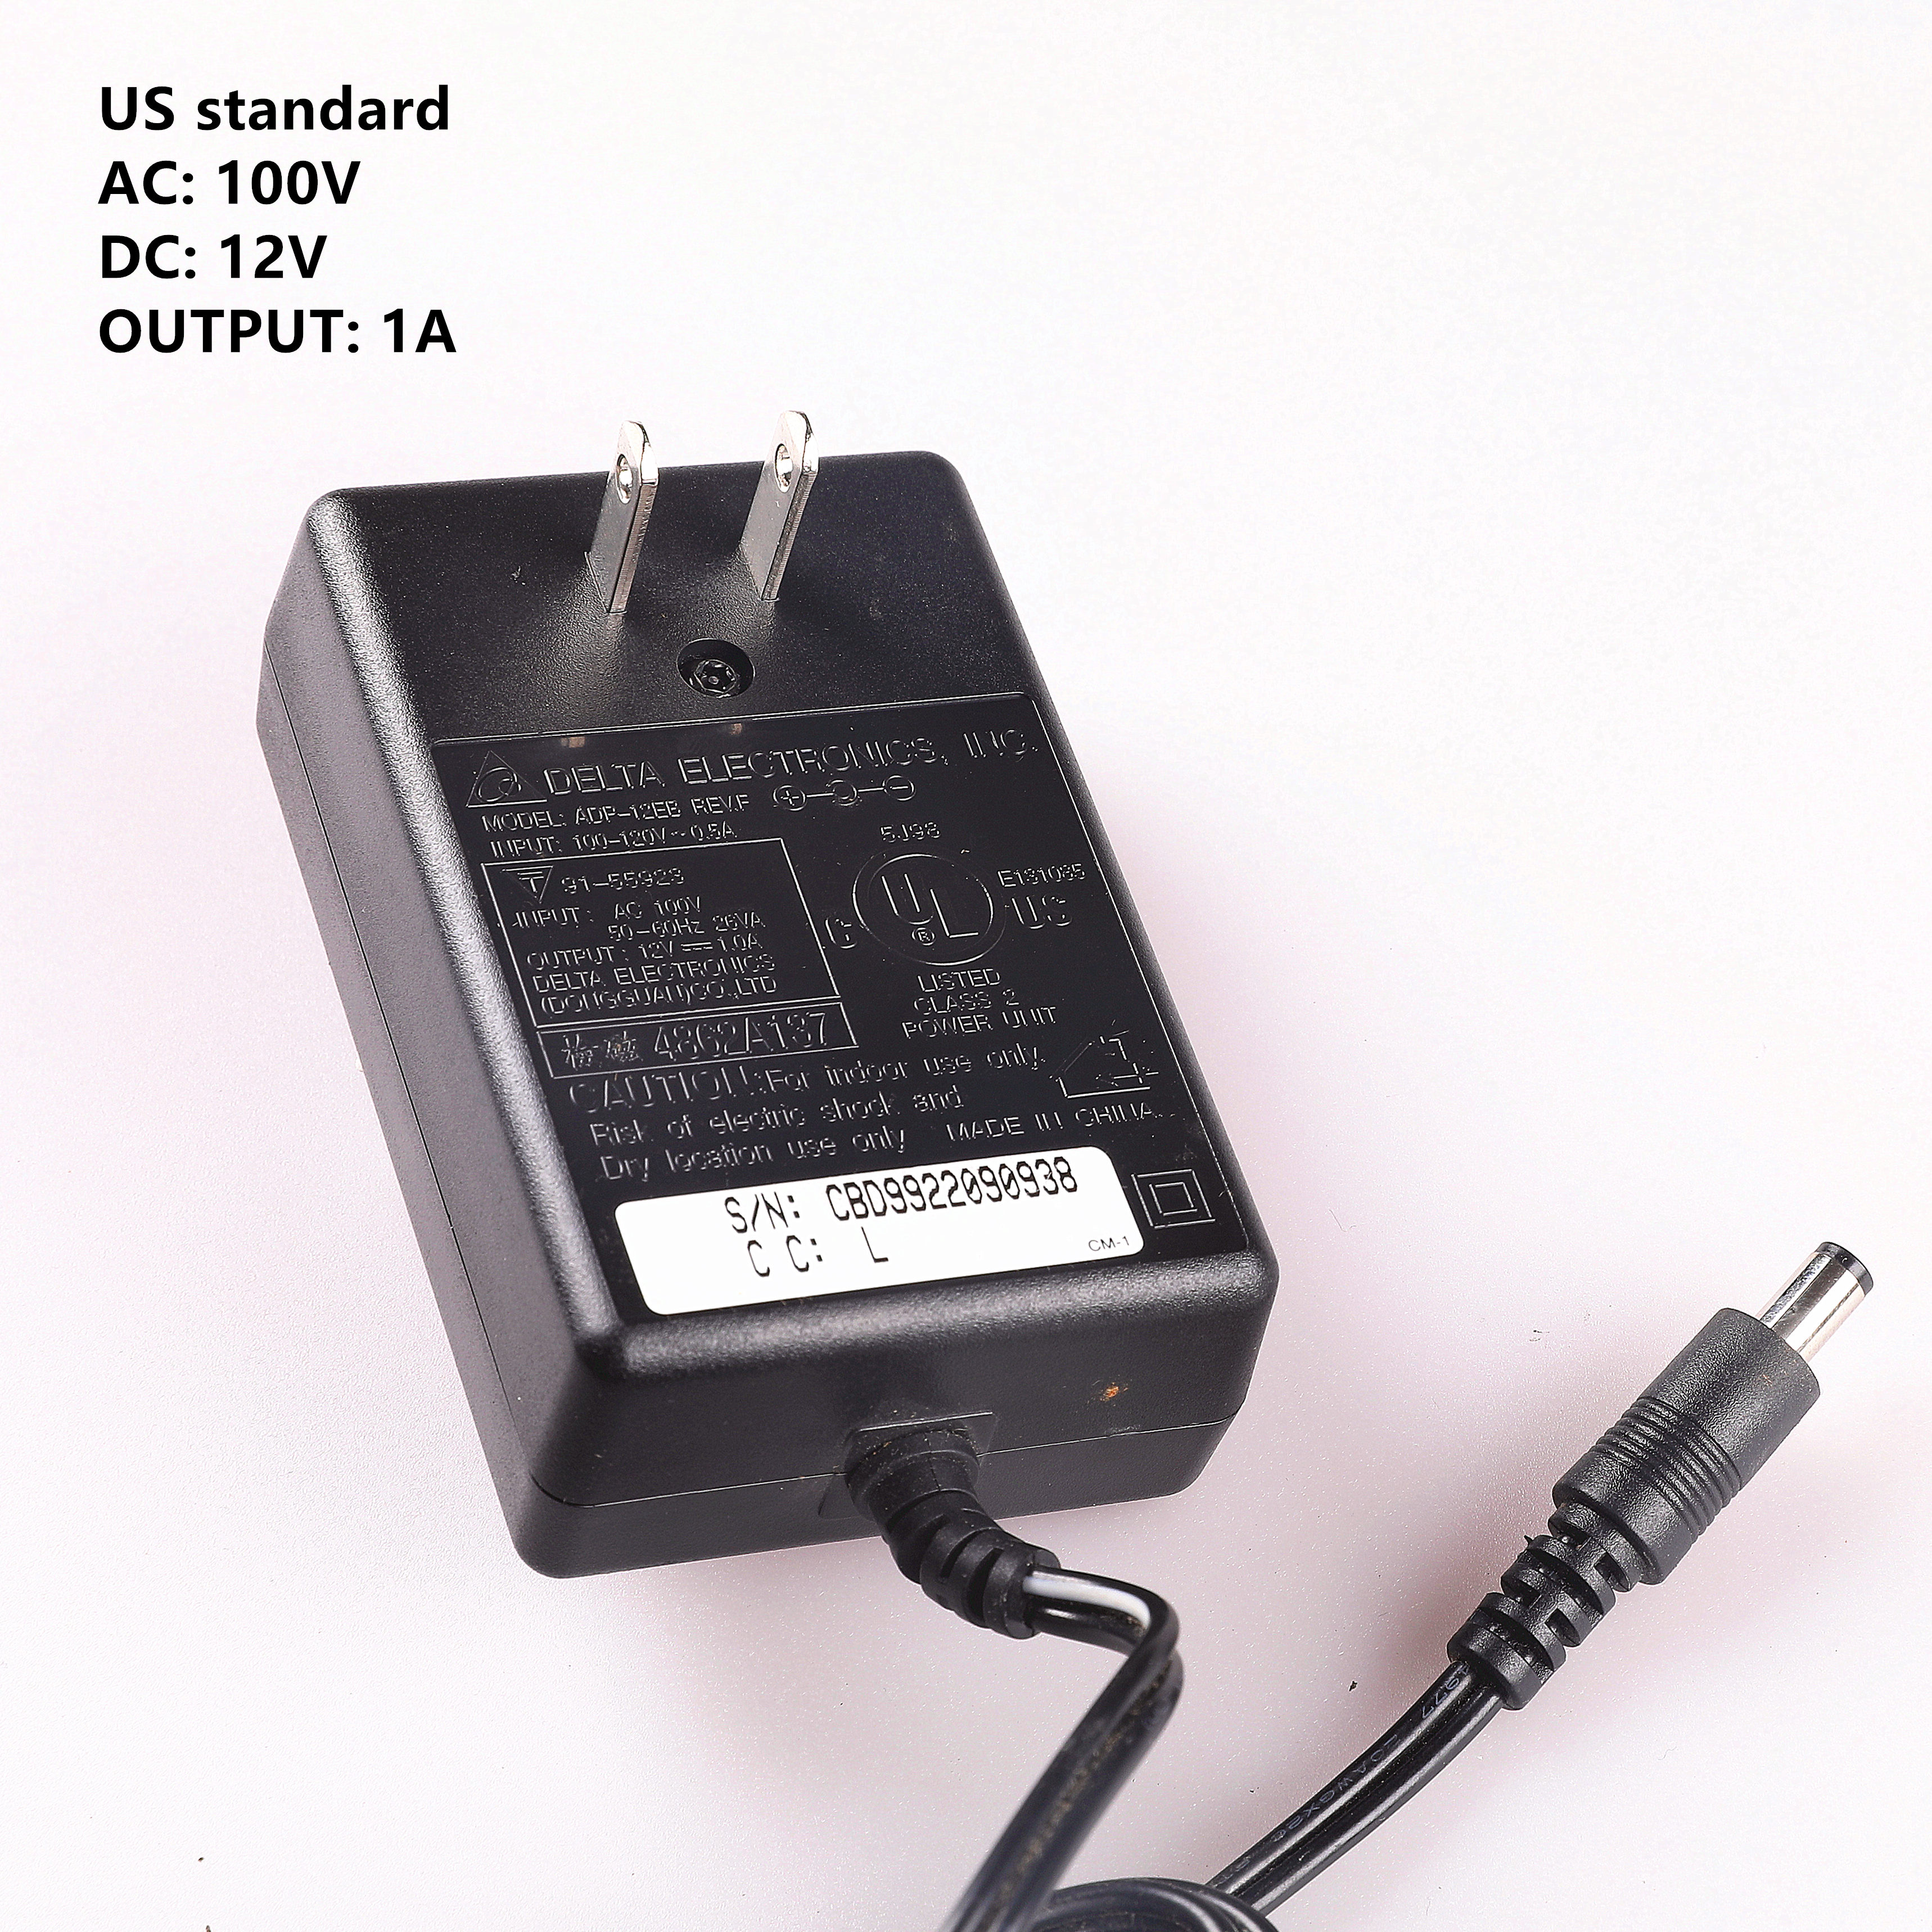 Power Adapter Supply <font><b>DC</b></font> 12V 1A 2A 3A <font><b>5A</b></font> 6A 8A <font><b>DC</b></font> <font><b>5</b></font> 12 24 V Volt Lighting Transformers LED Driver Power Adapter Strip Lamp image